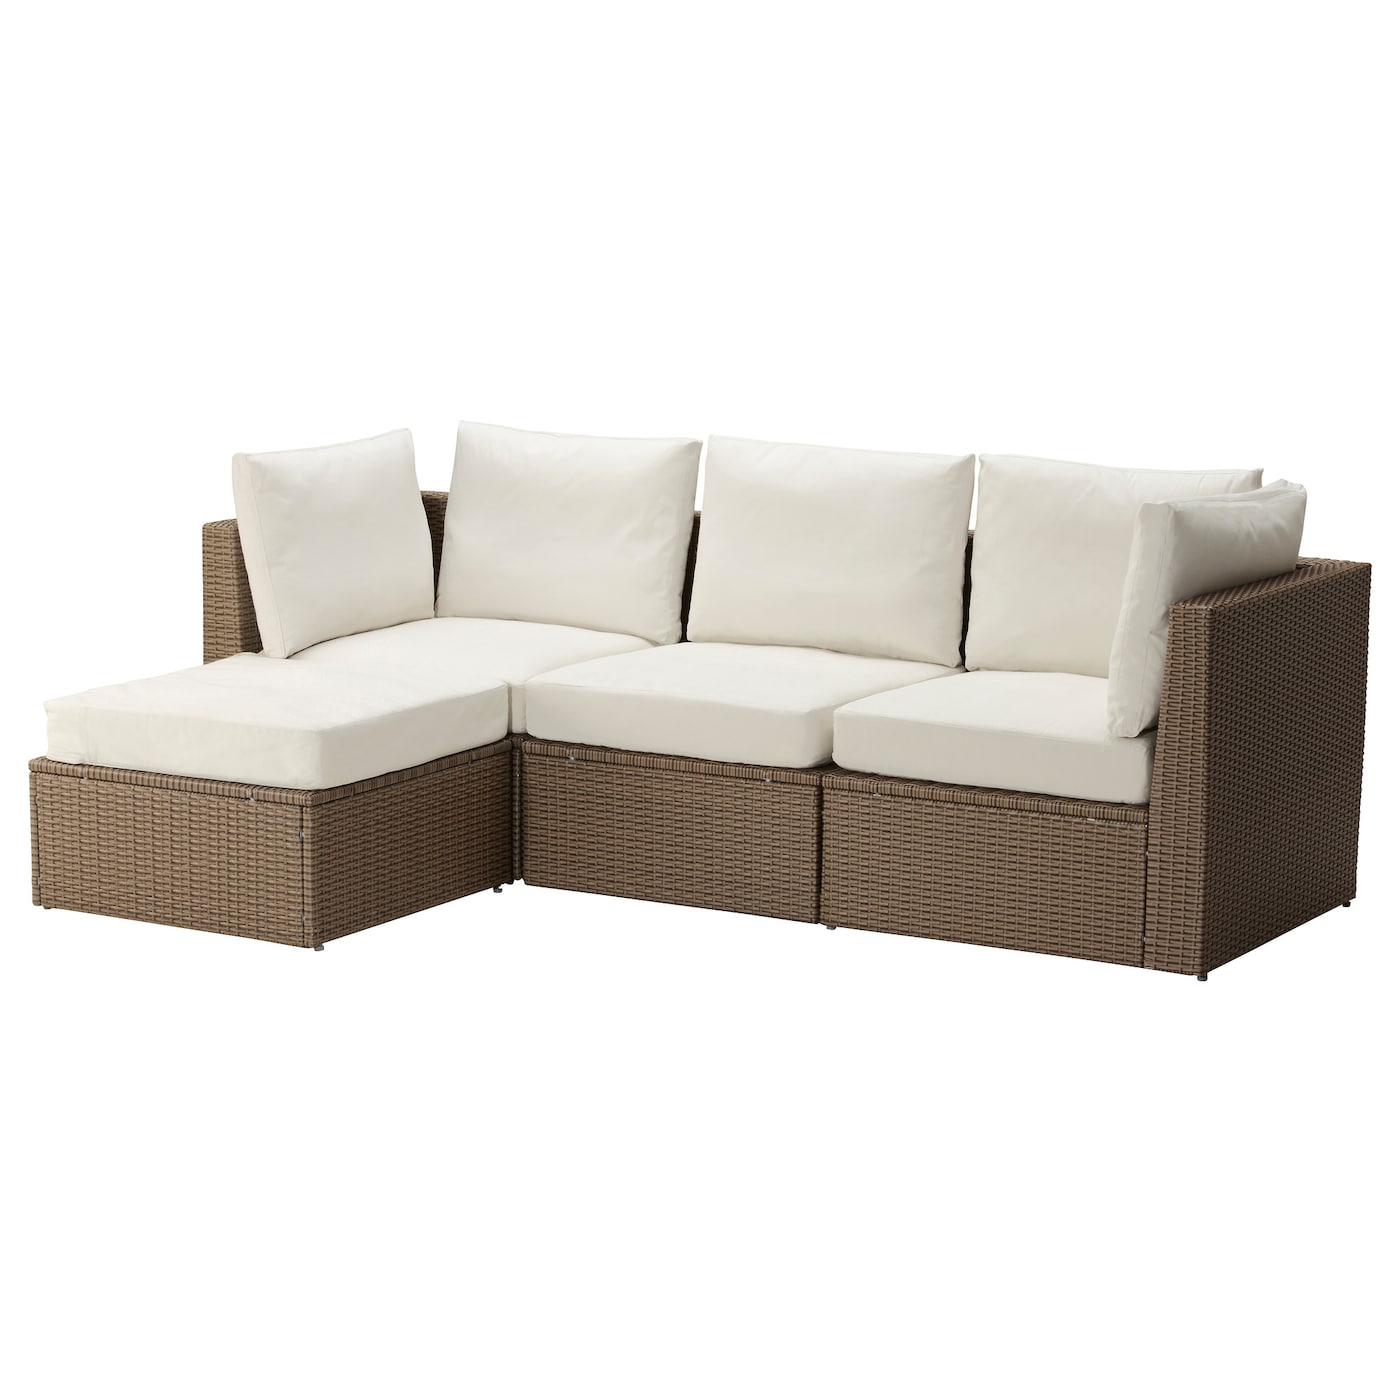 IKEA ARHOLMA 3 Seat Sofa With Footstool, Outdoor